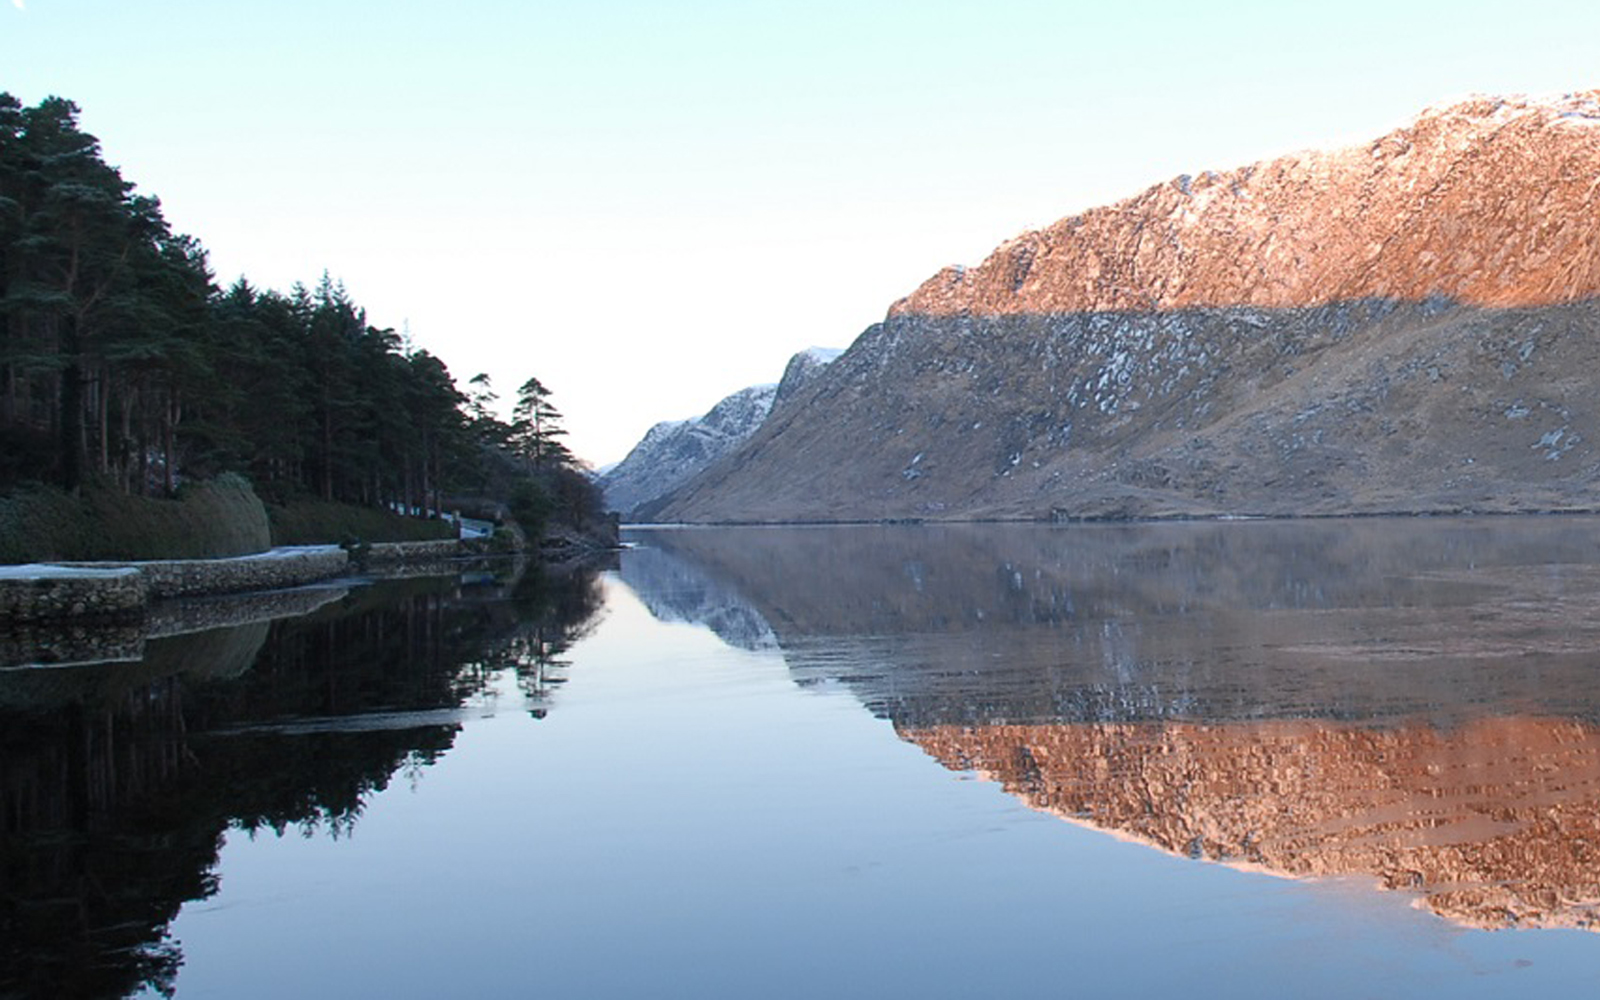 Glenveagh National Park dusted with snow. Source: http://www.glenveaghnationalpark.ie